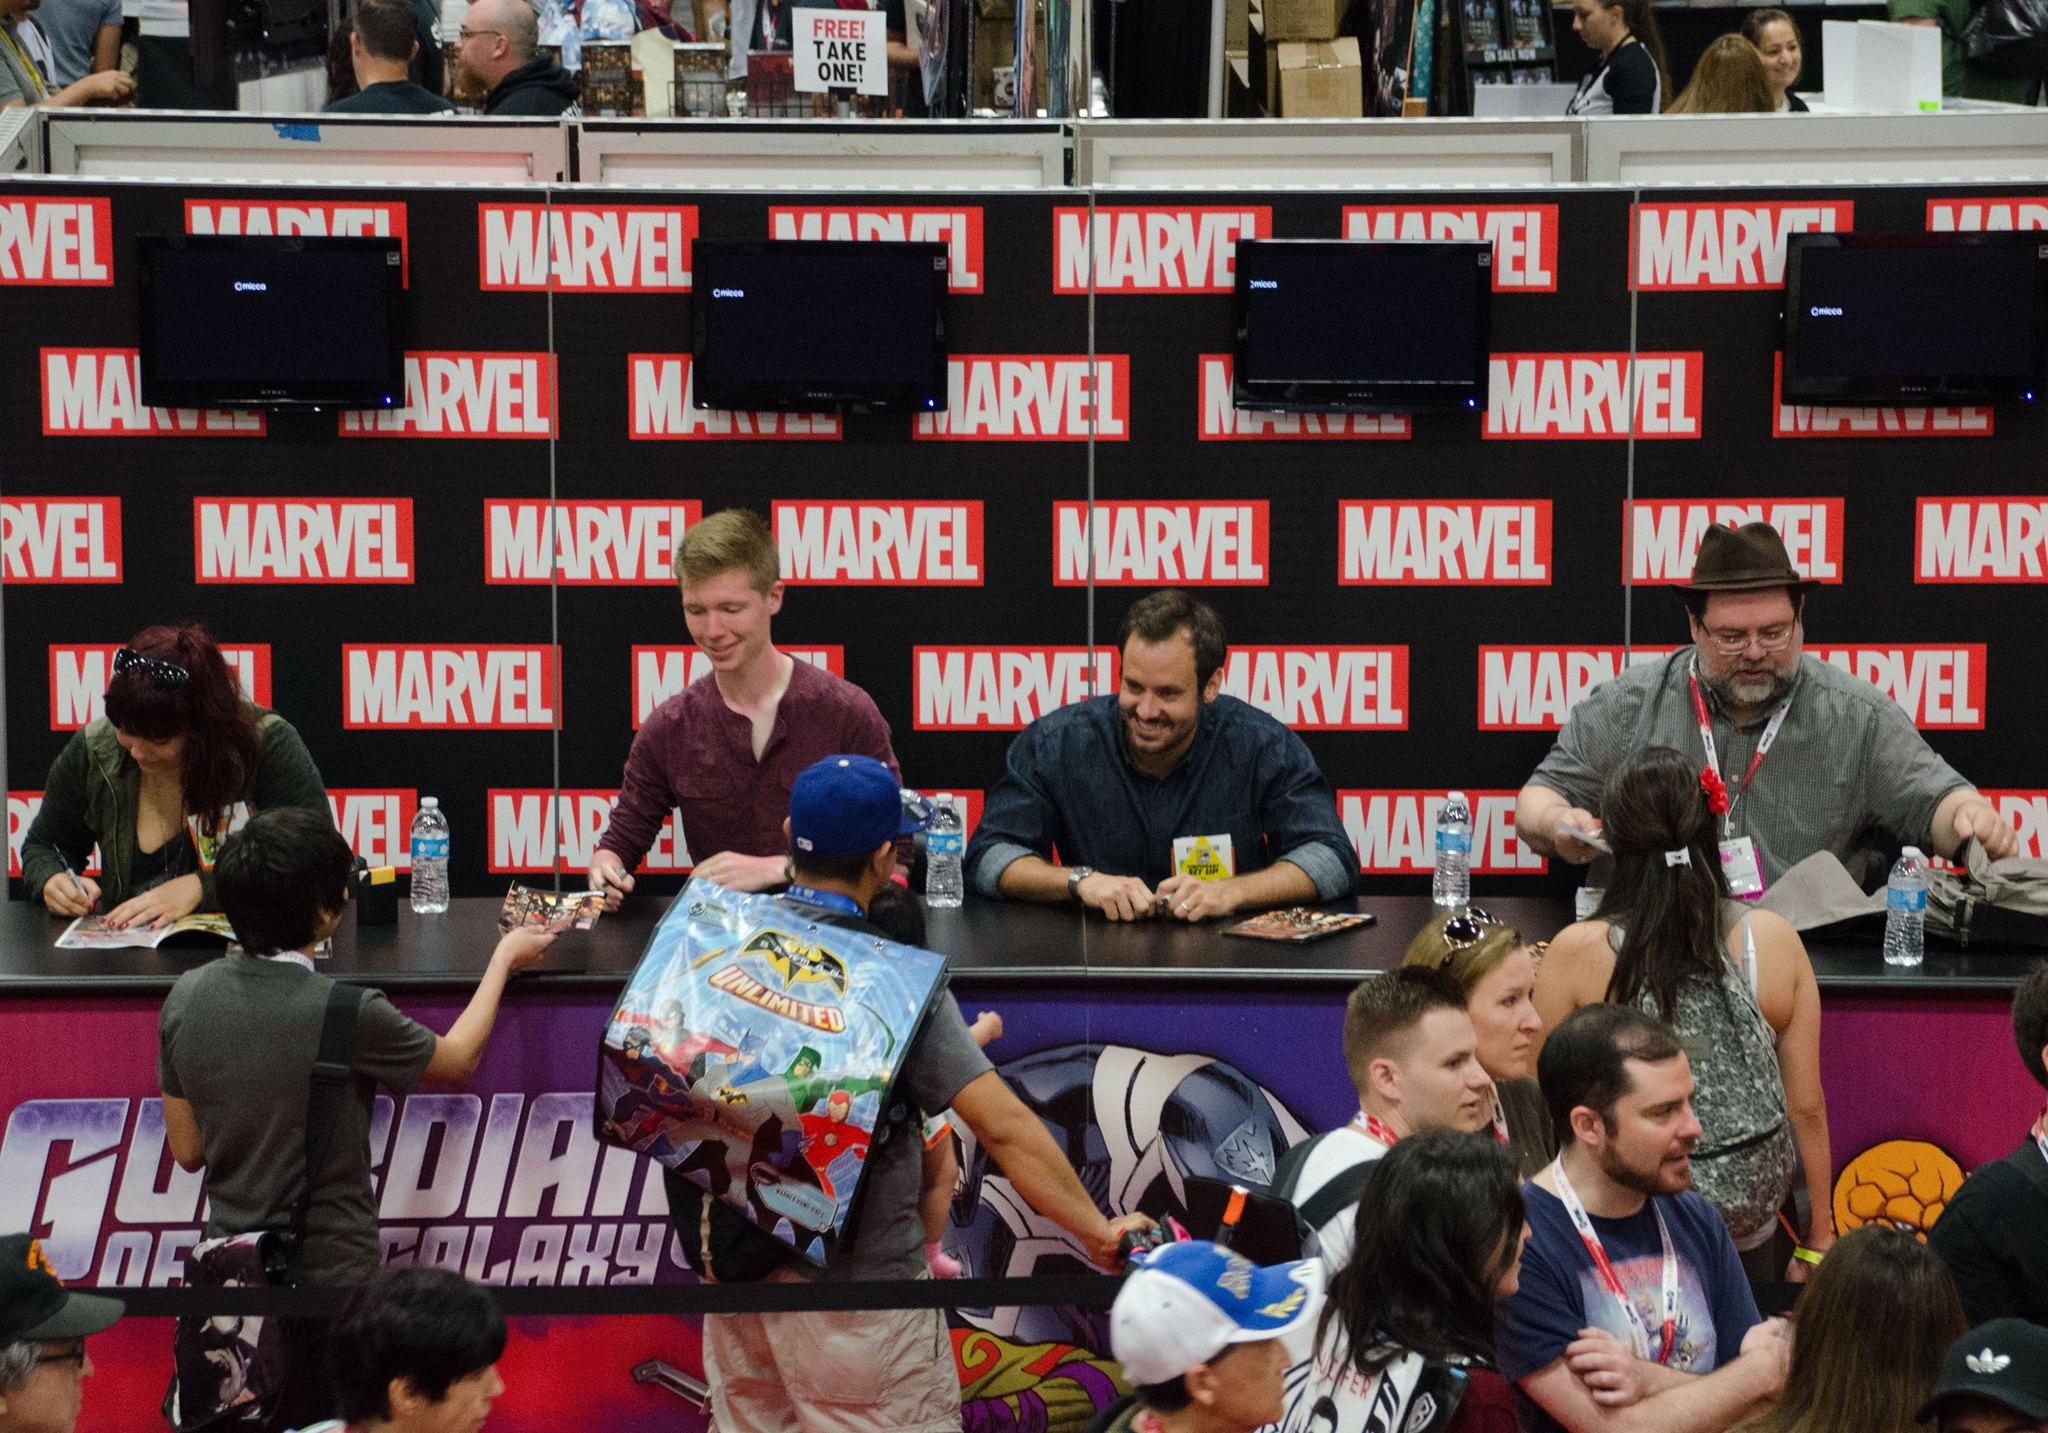 Kent State University student works with Marvel on the first-ever, student-illustrated Avengers comic powered by Creative Cloud which will debut in July at the San Diego Comic-Con.